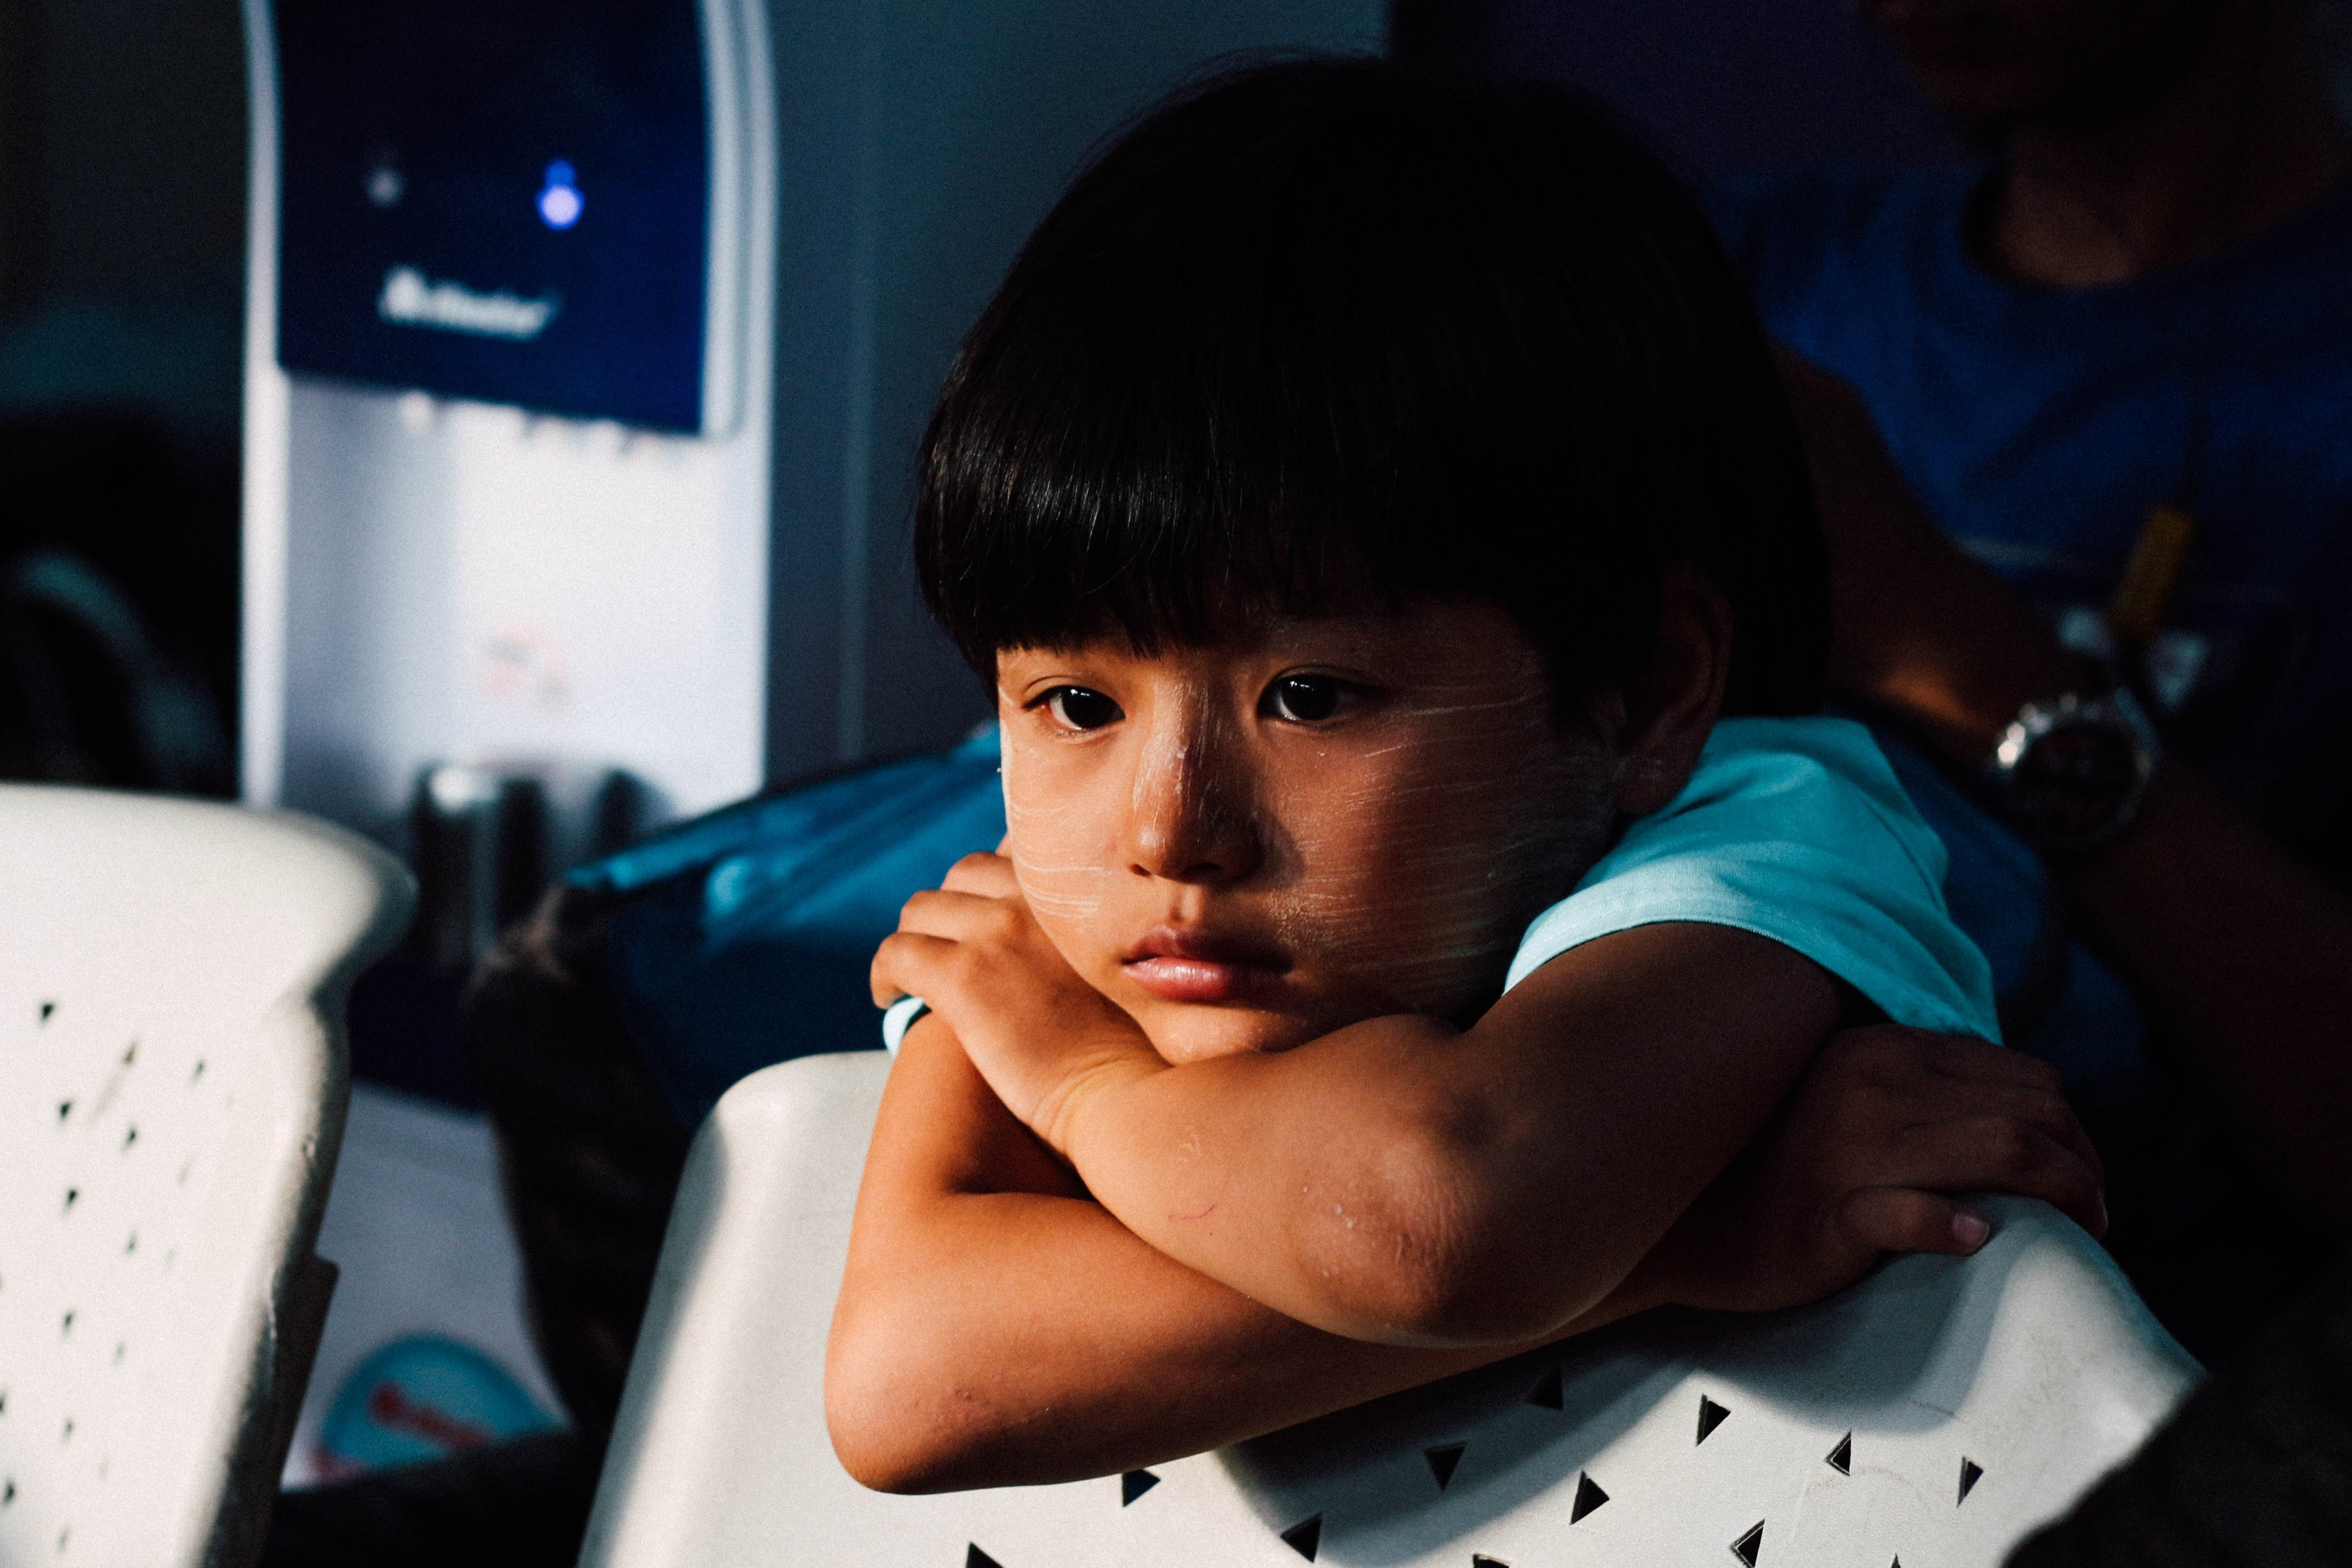 A young child feeling upset and abandoned | Photo by Chinh Le Duc on Unsplash